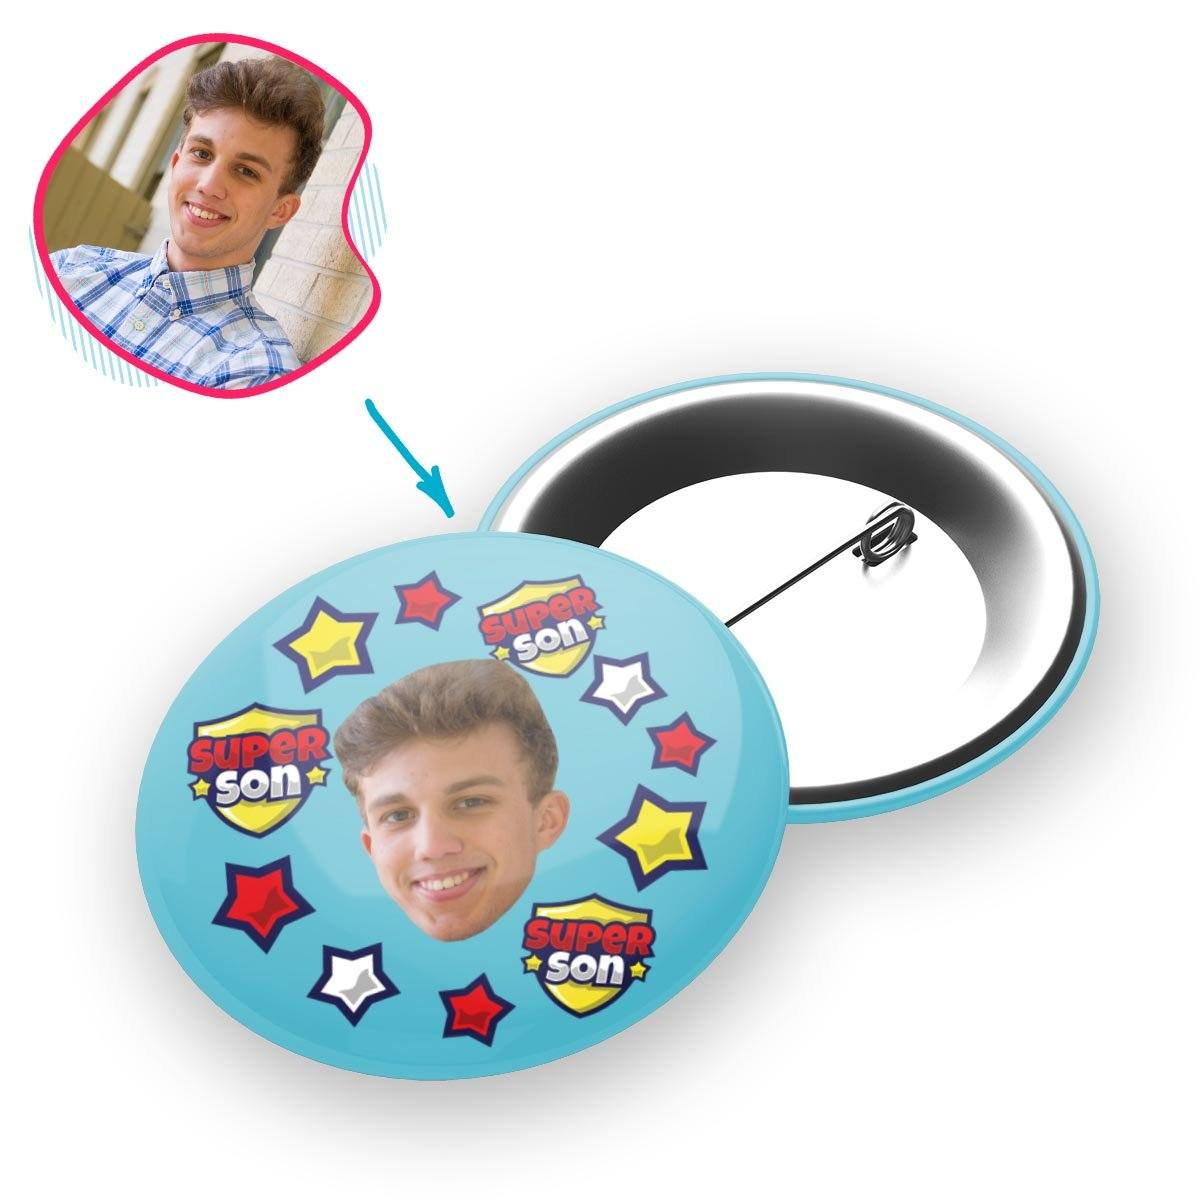 blue Super Son pin personalized with photo of face printed on it